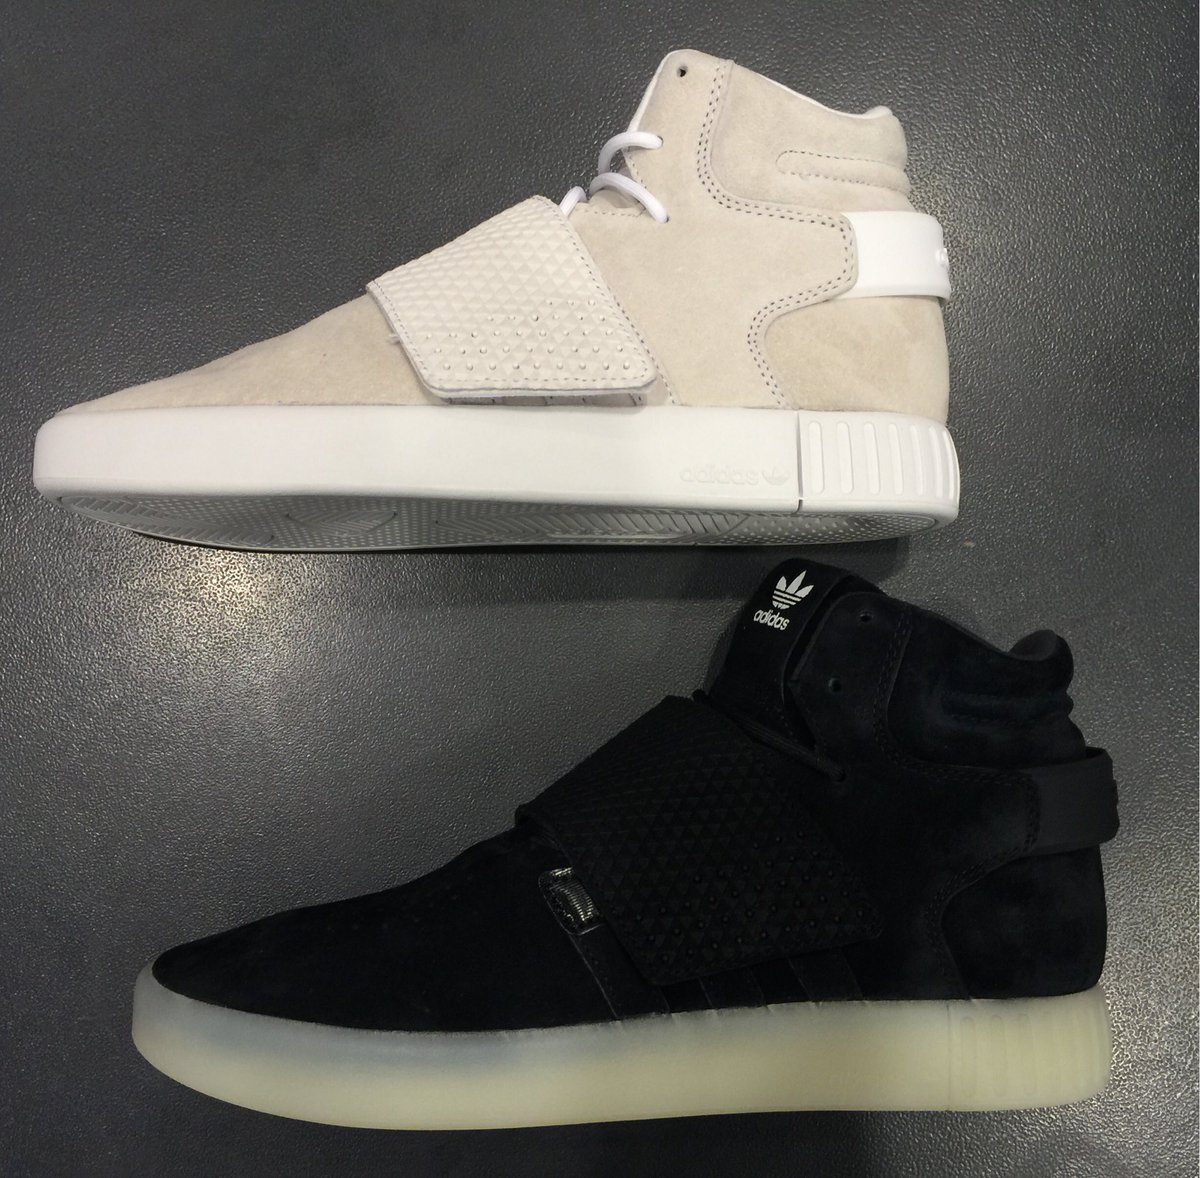 Adidas tubular invader strap black review